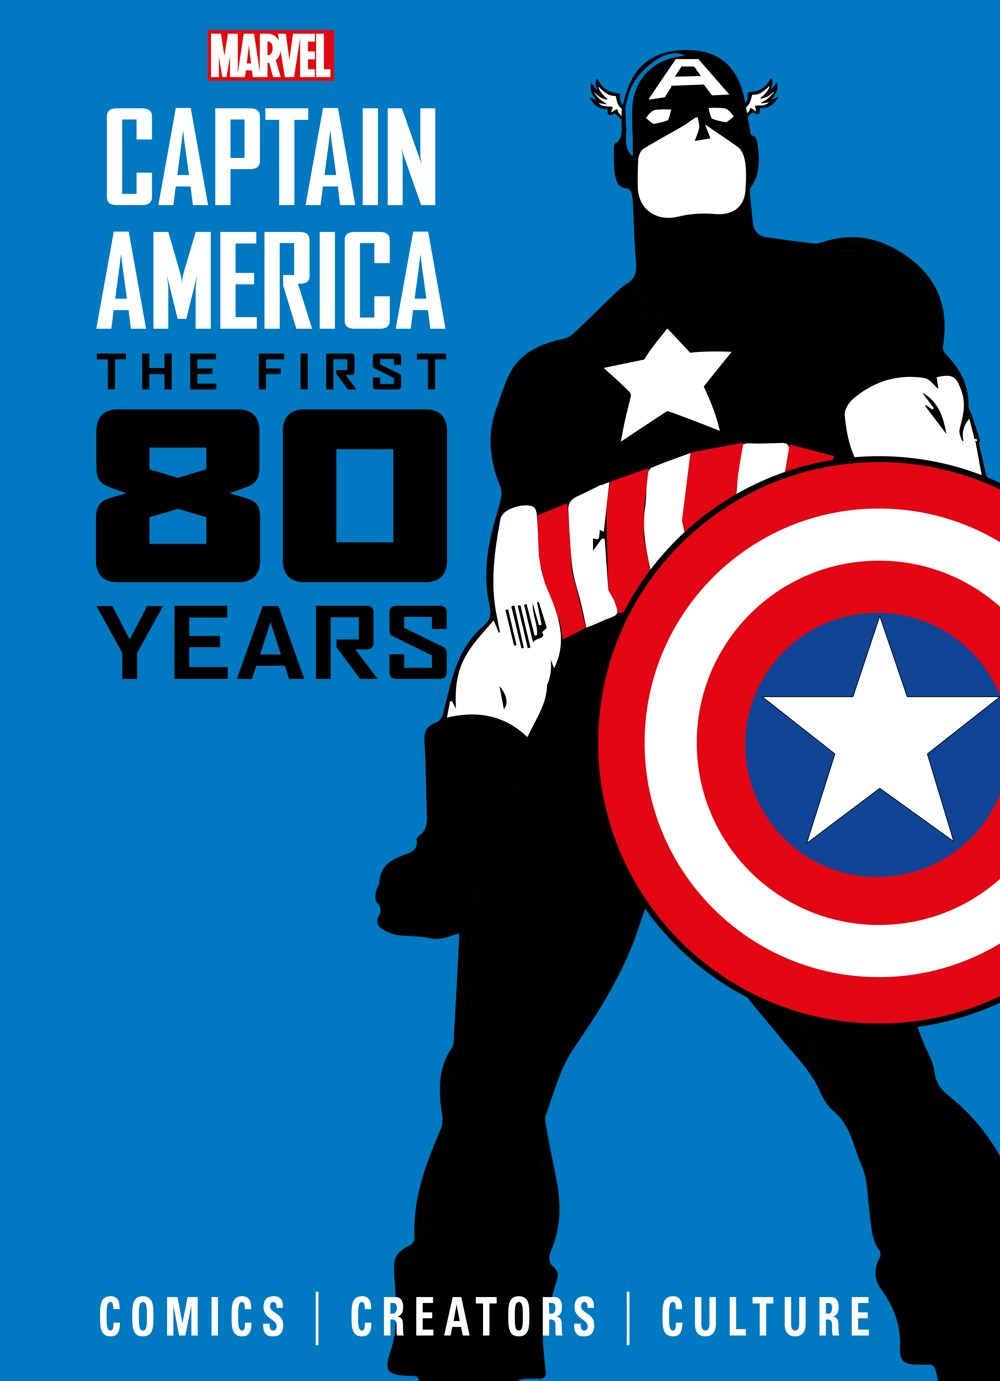 hardcover ComicList Previews: MARVEL COMICS CAPTAIN AMERICA THE FIRST 80 YEARS